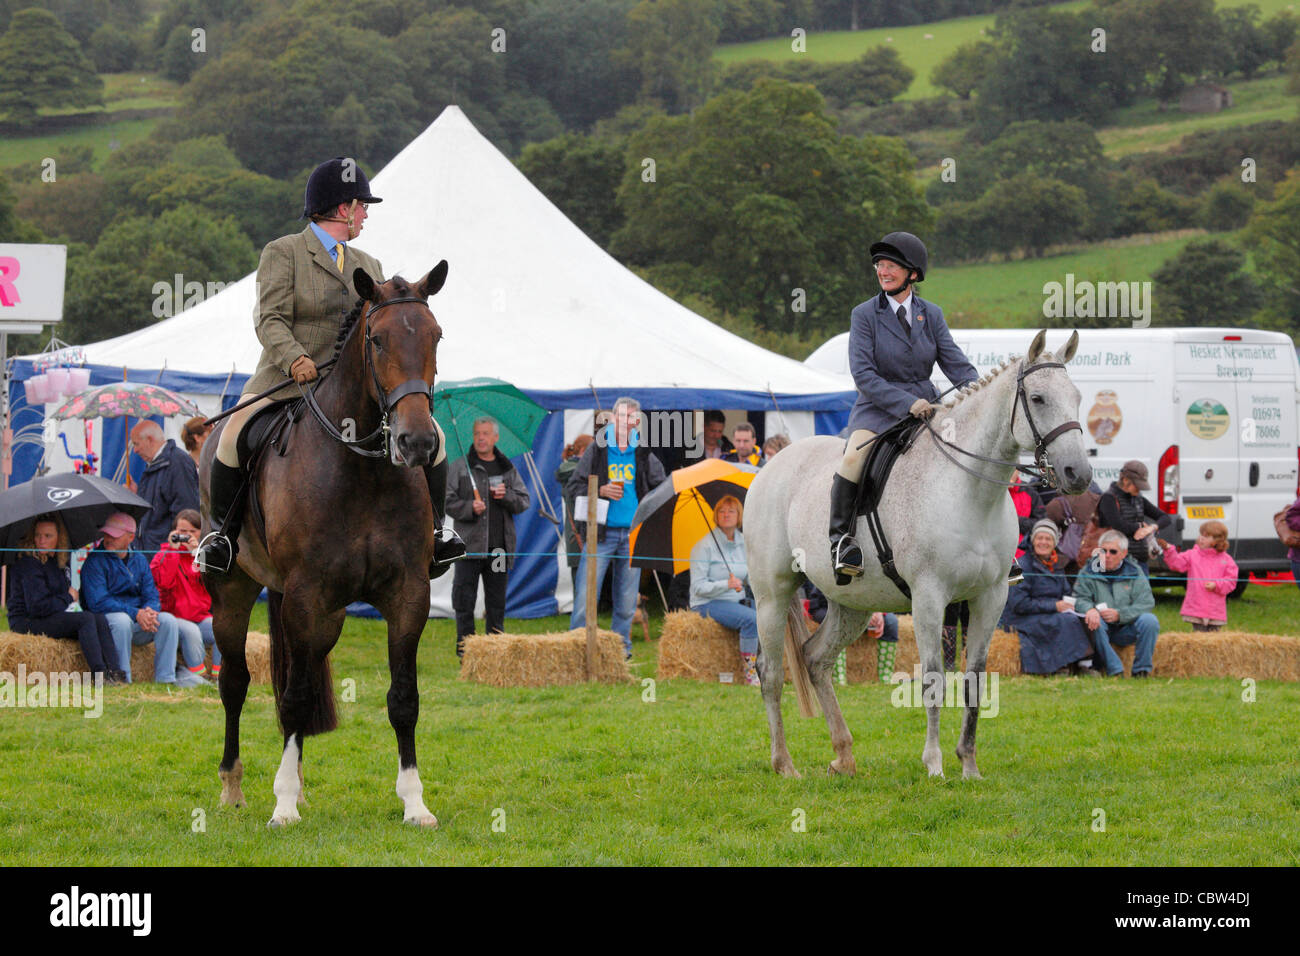 Two Horses and riders on the show ground at Hesket Newmarket Agricultural Society Show, Cumbria, England, UK - Stock Image